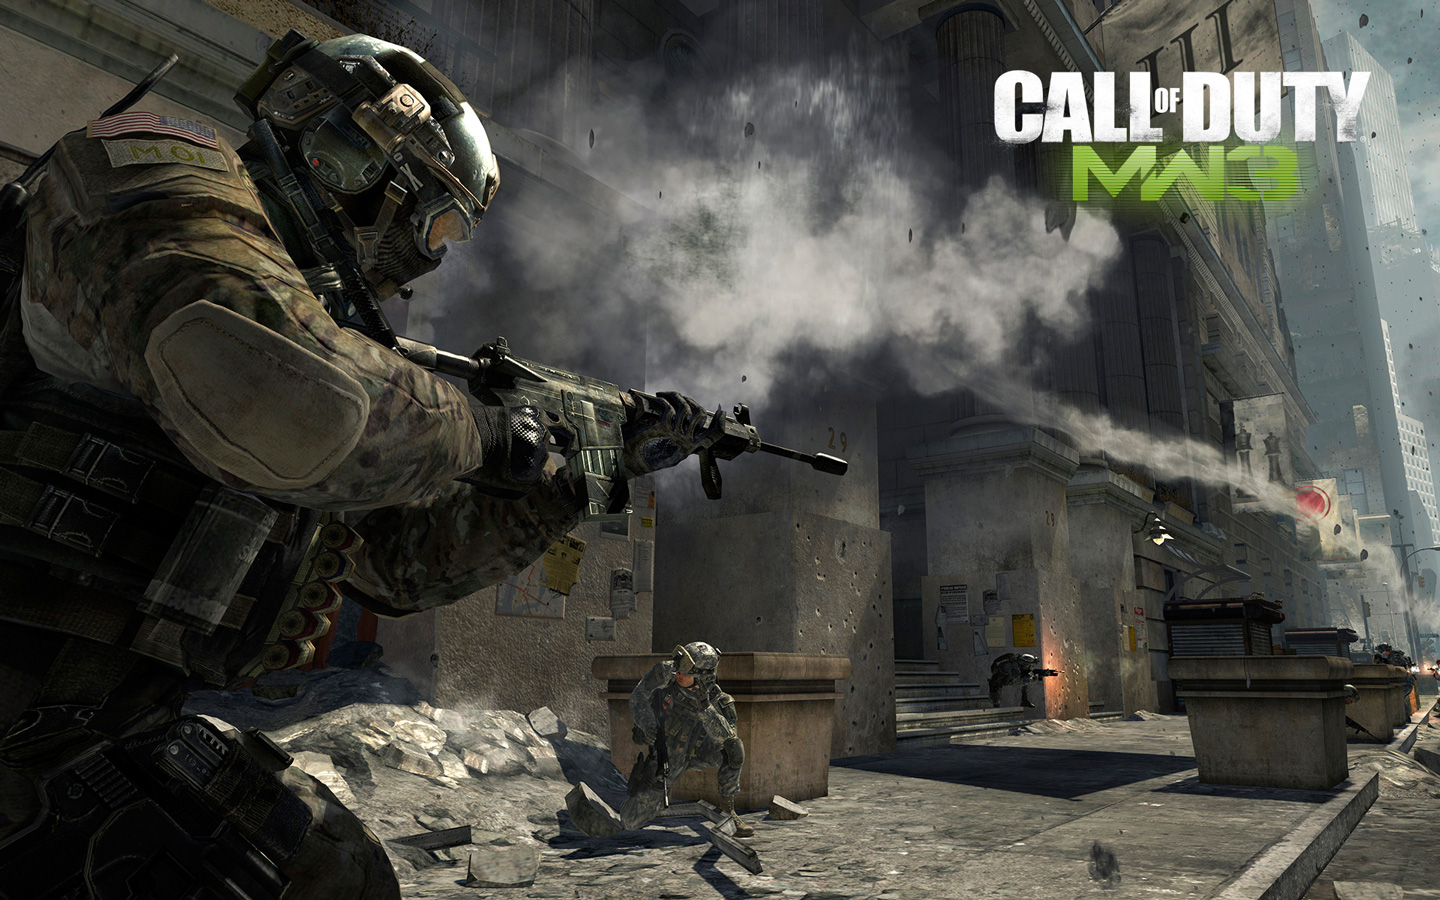 Арт к игре Call of Duty: Modern Warfare 3